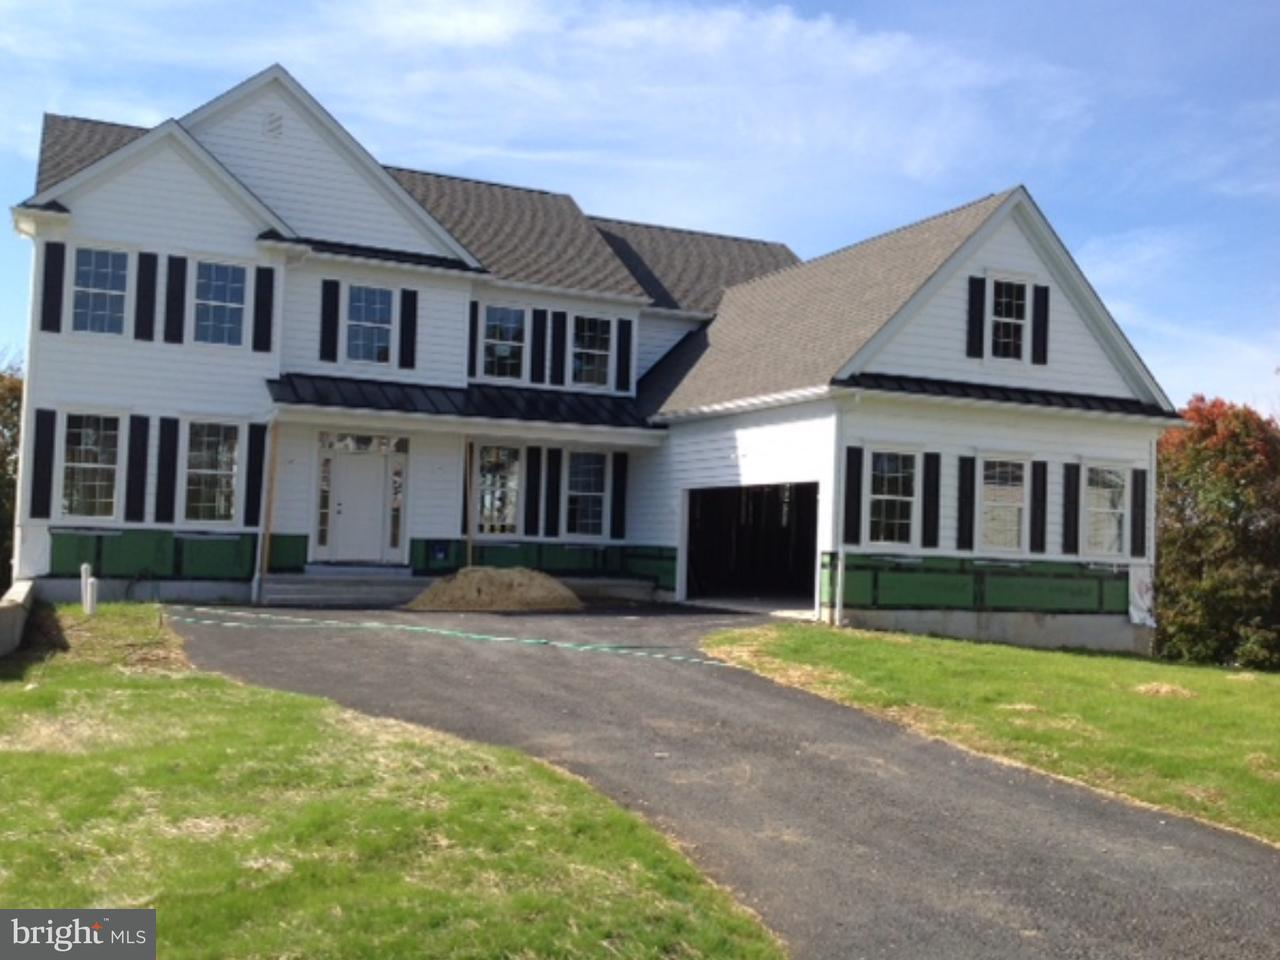 26  Gallop West Chester, PA 19380